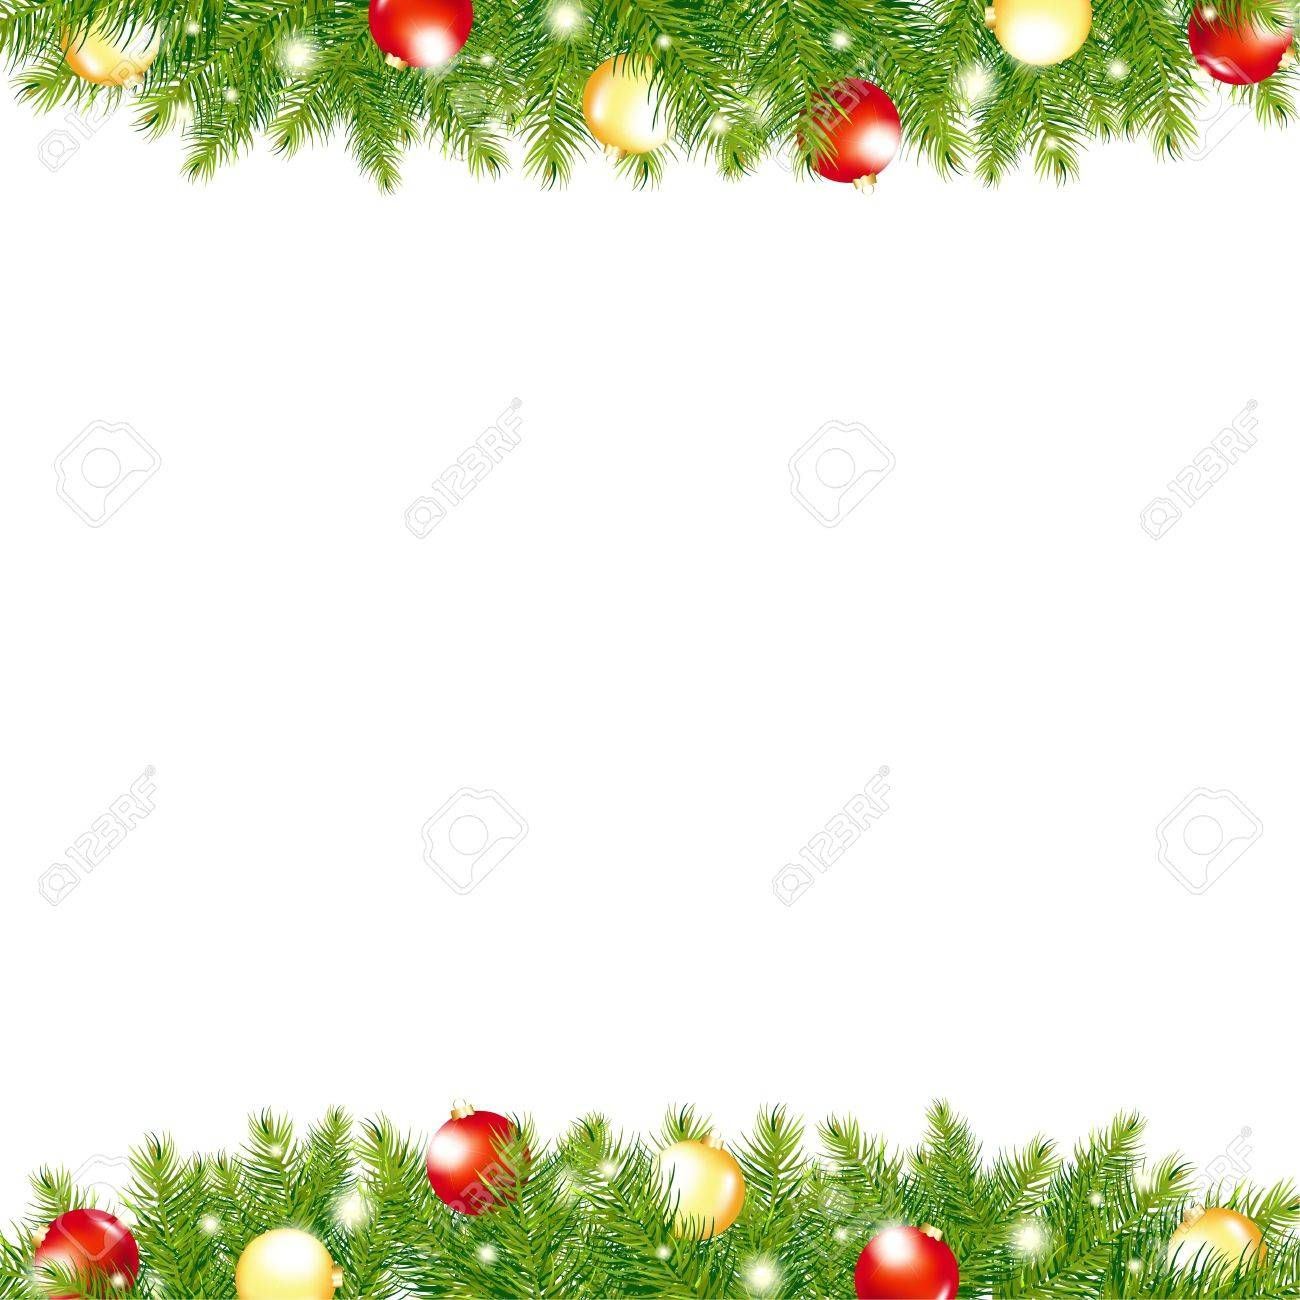 vector xmas and happy new year border illustration